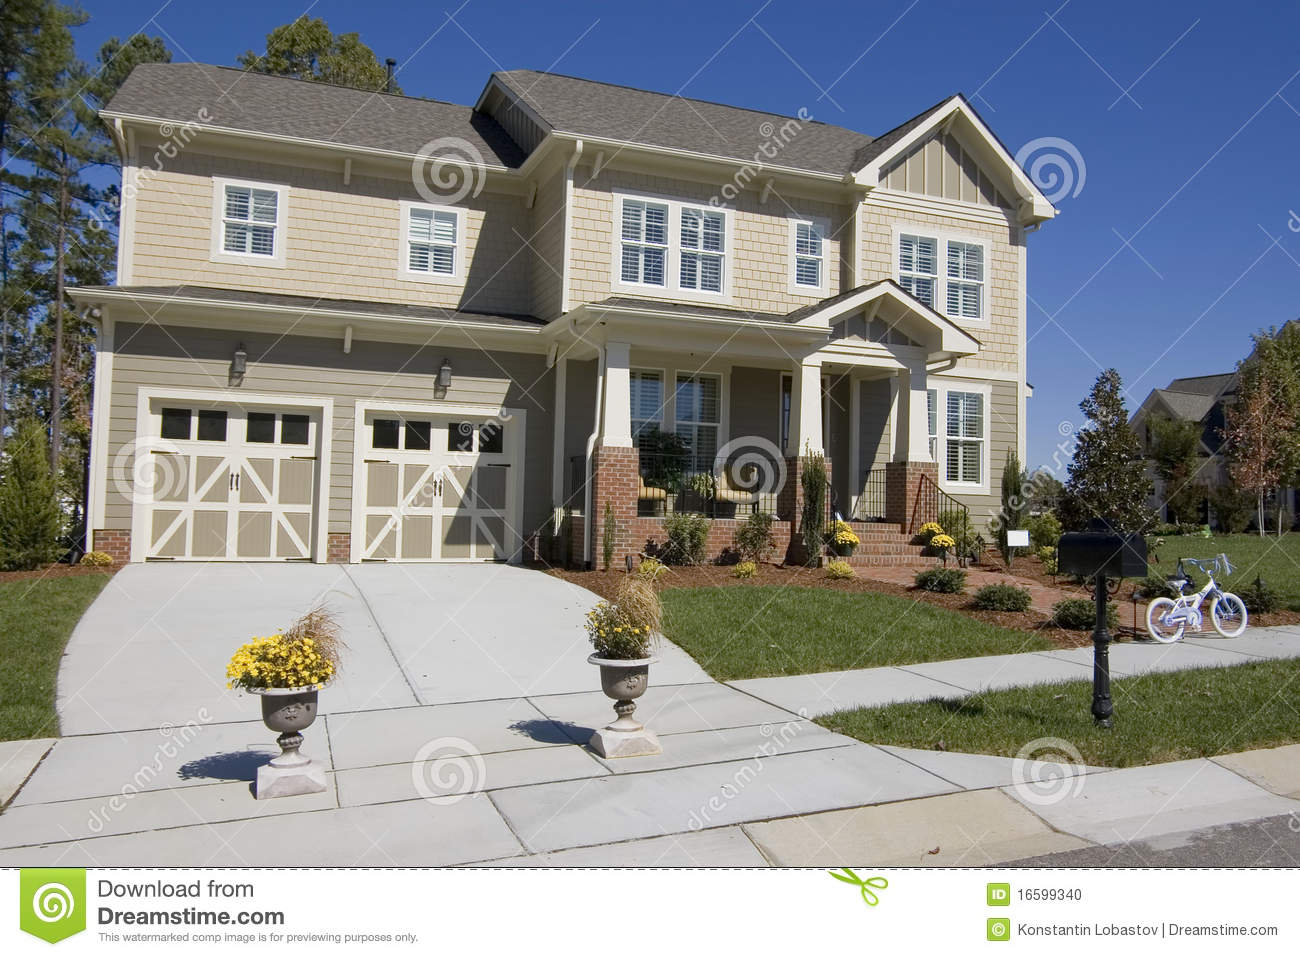 Best Kitchen Gallery: New Suburban House For Sale Stock Photo Image Of Estate America of New House Sale on rachelxblog.com